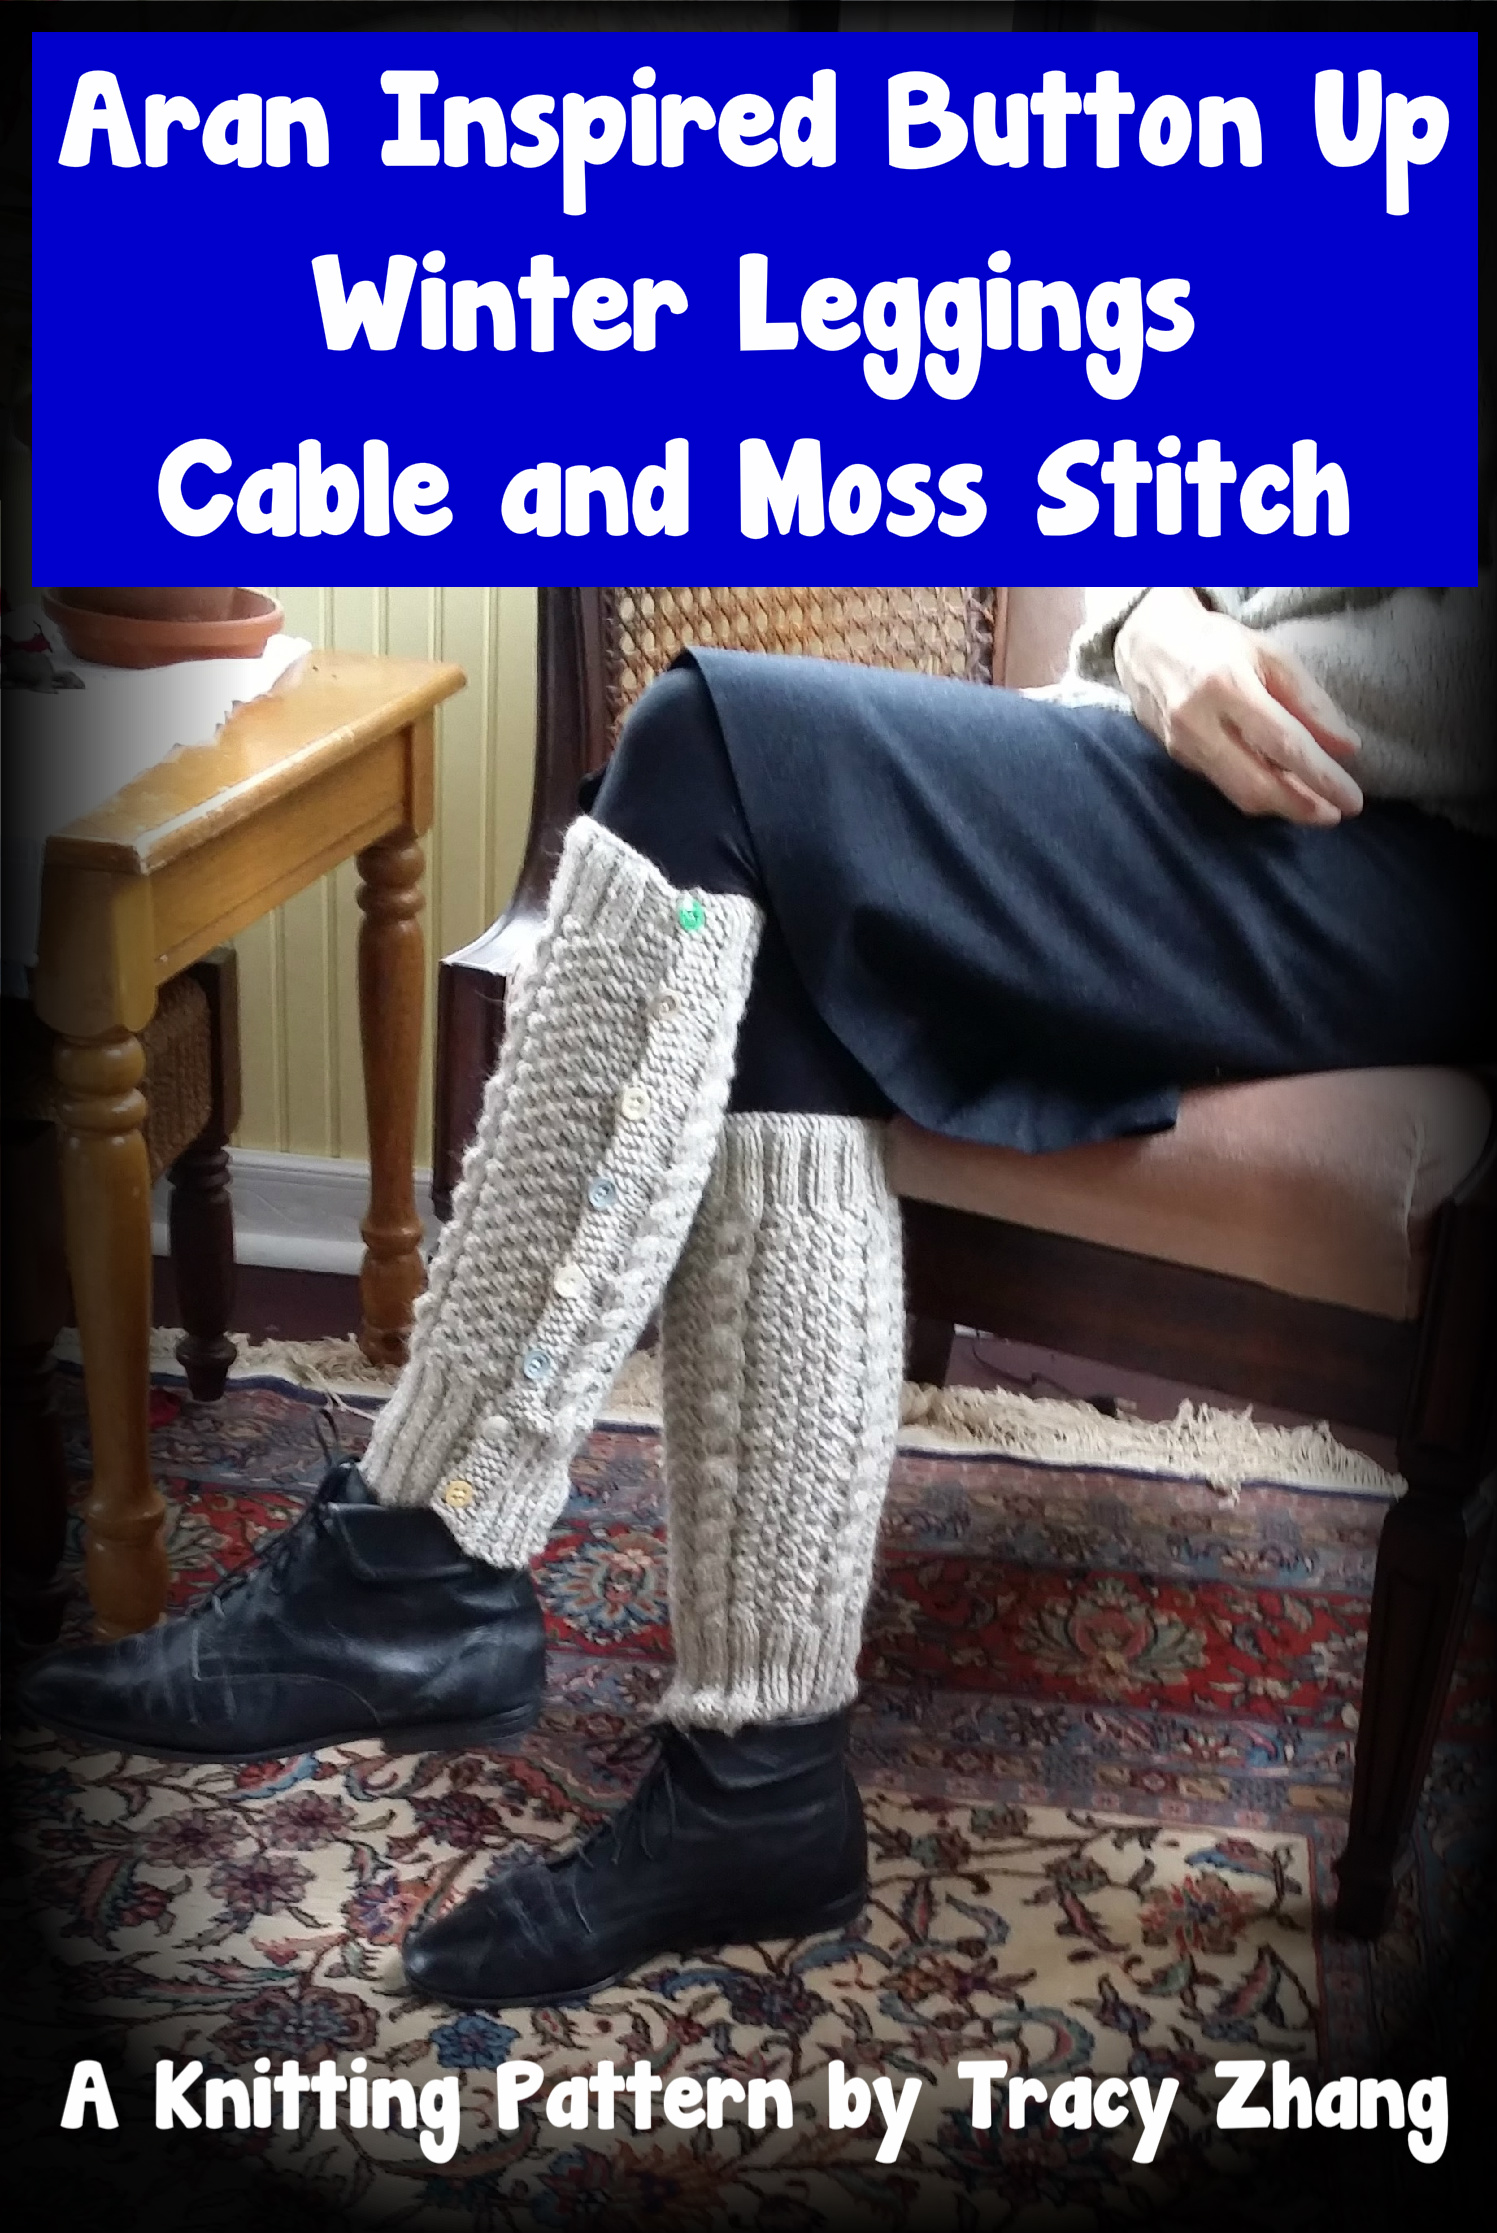 Smashwords Aran Inspired Button Up Winter Leggings Cable Moss